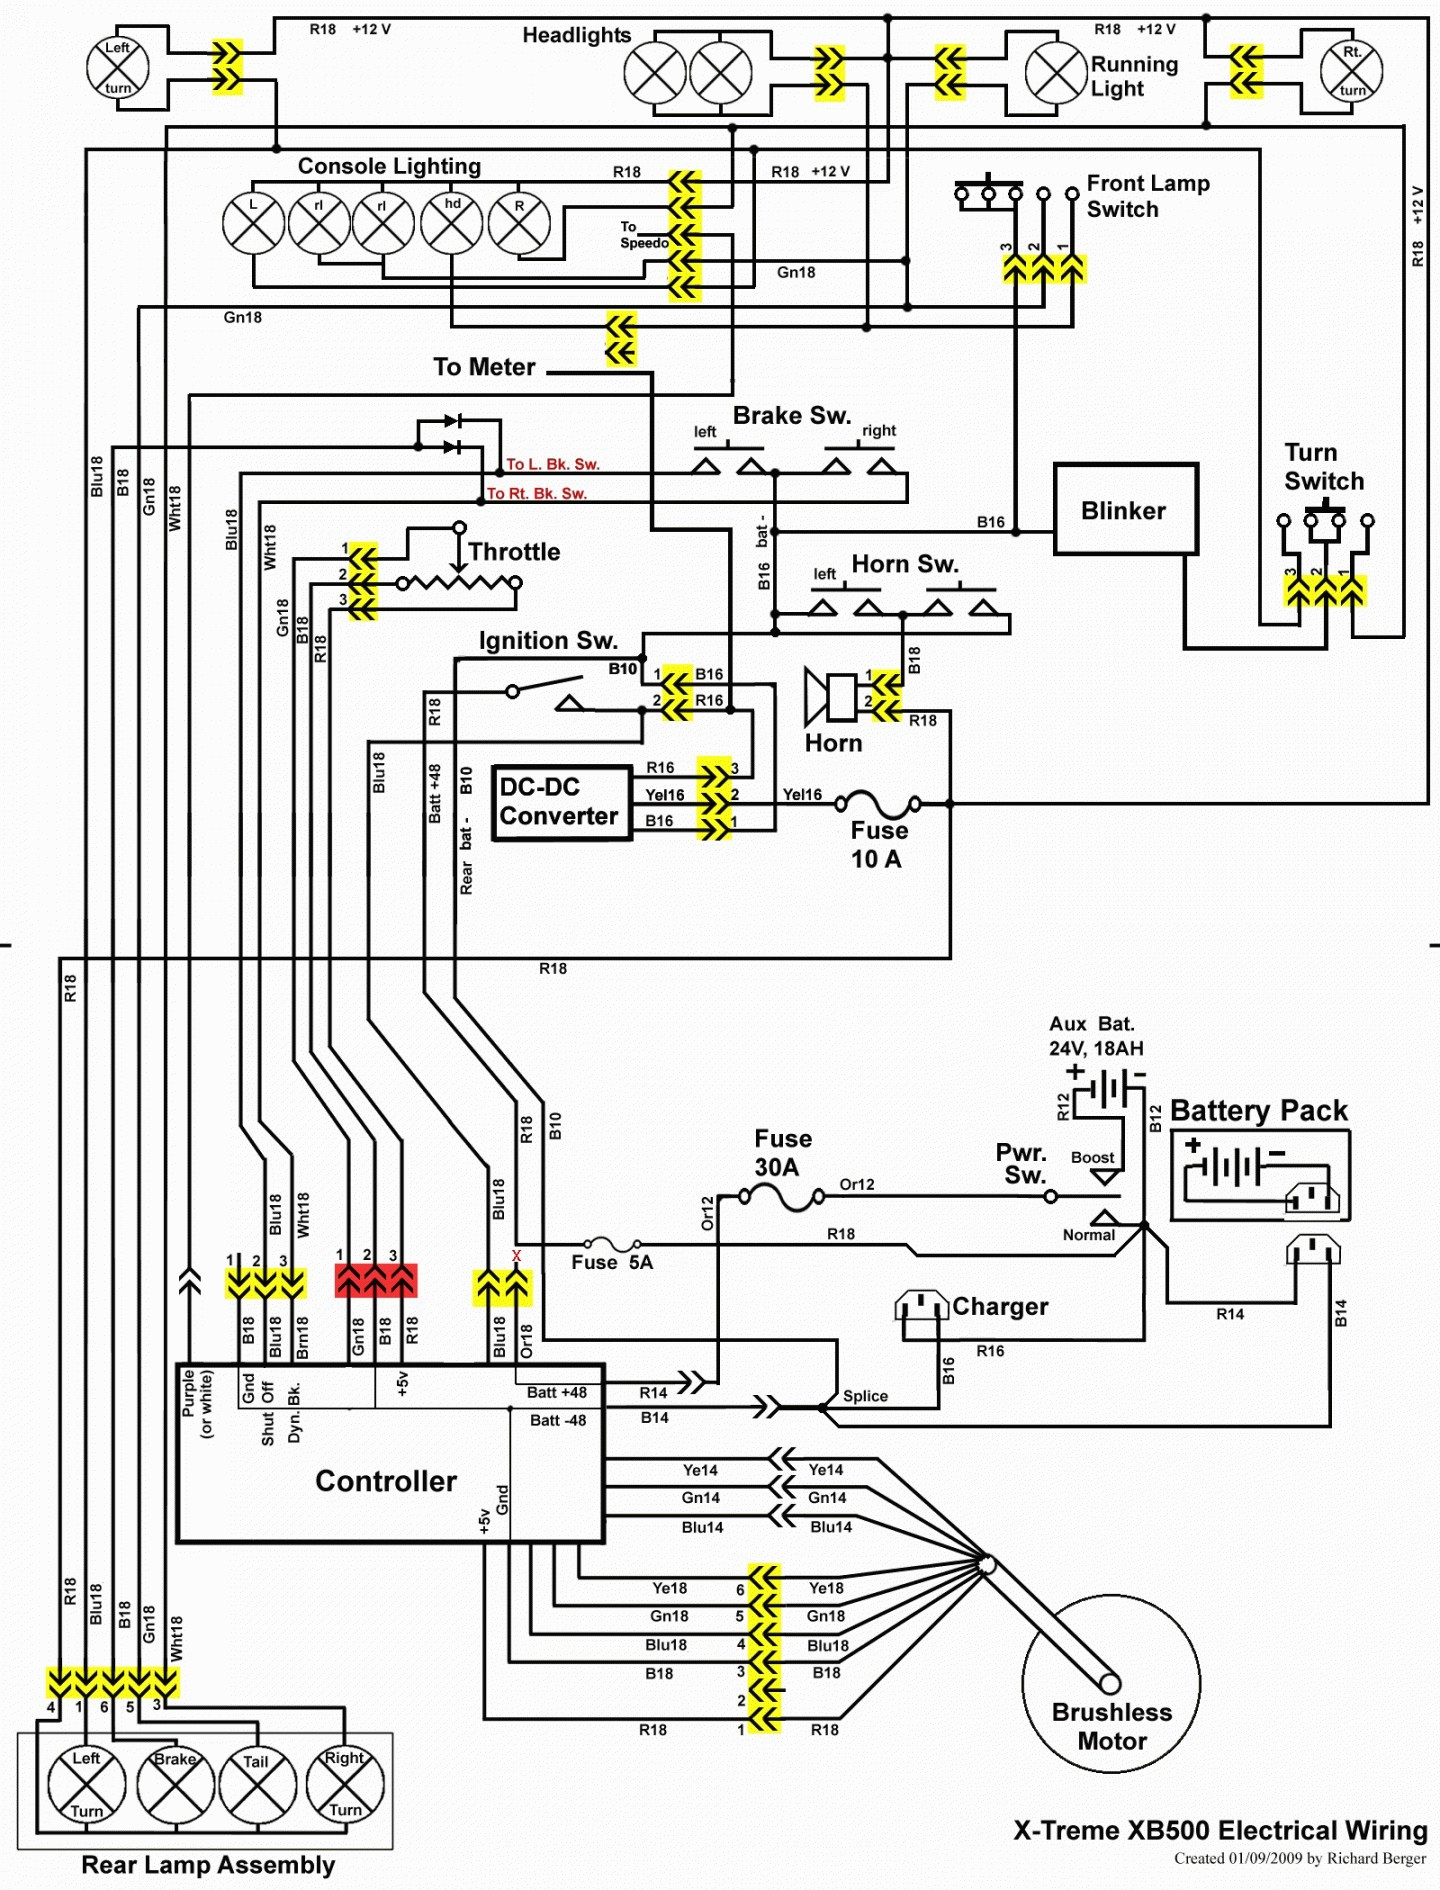 2013 Tao Scooter Wiring Diagram Library Gas Taotao Wire Center U2022 At